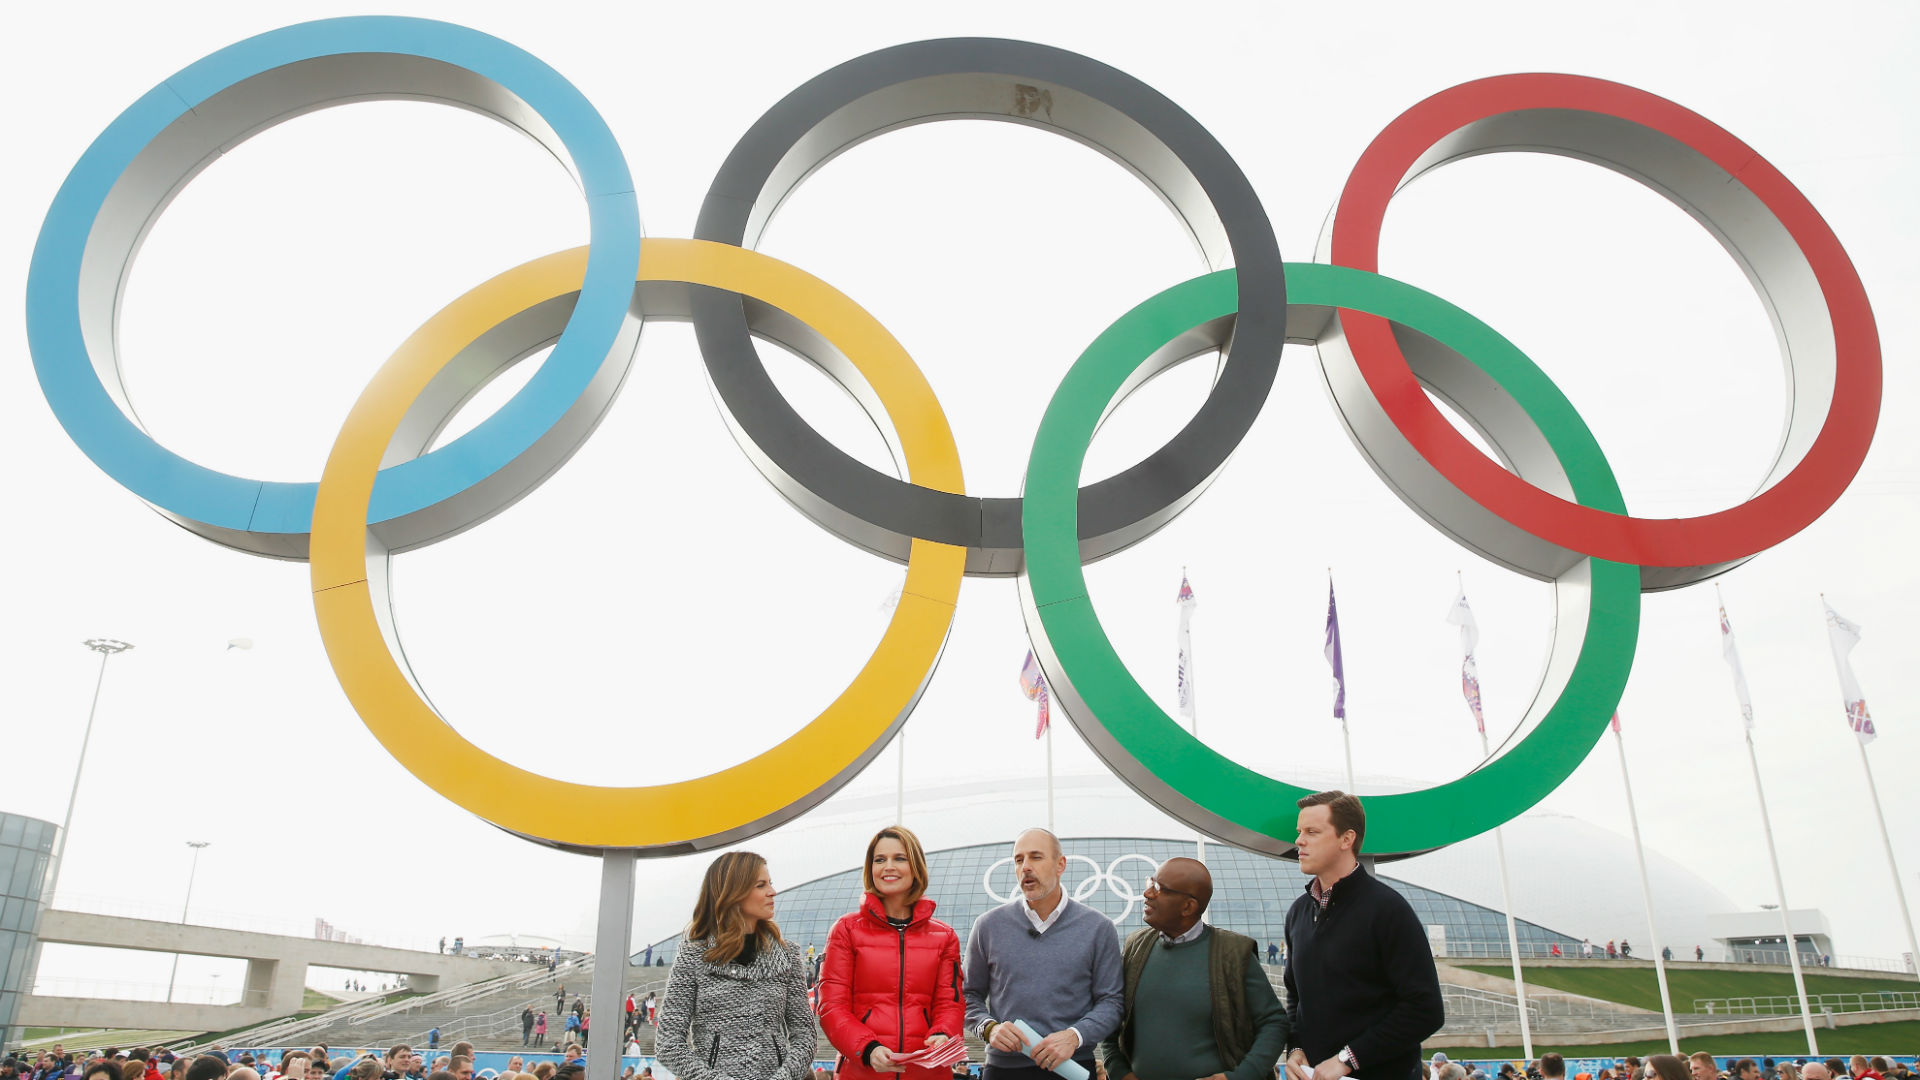 NBCUniversal slightly ahead of Sochi for 2018 Winter Olympics ad sales